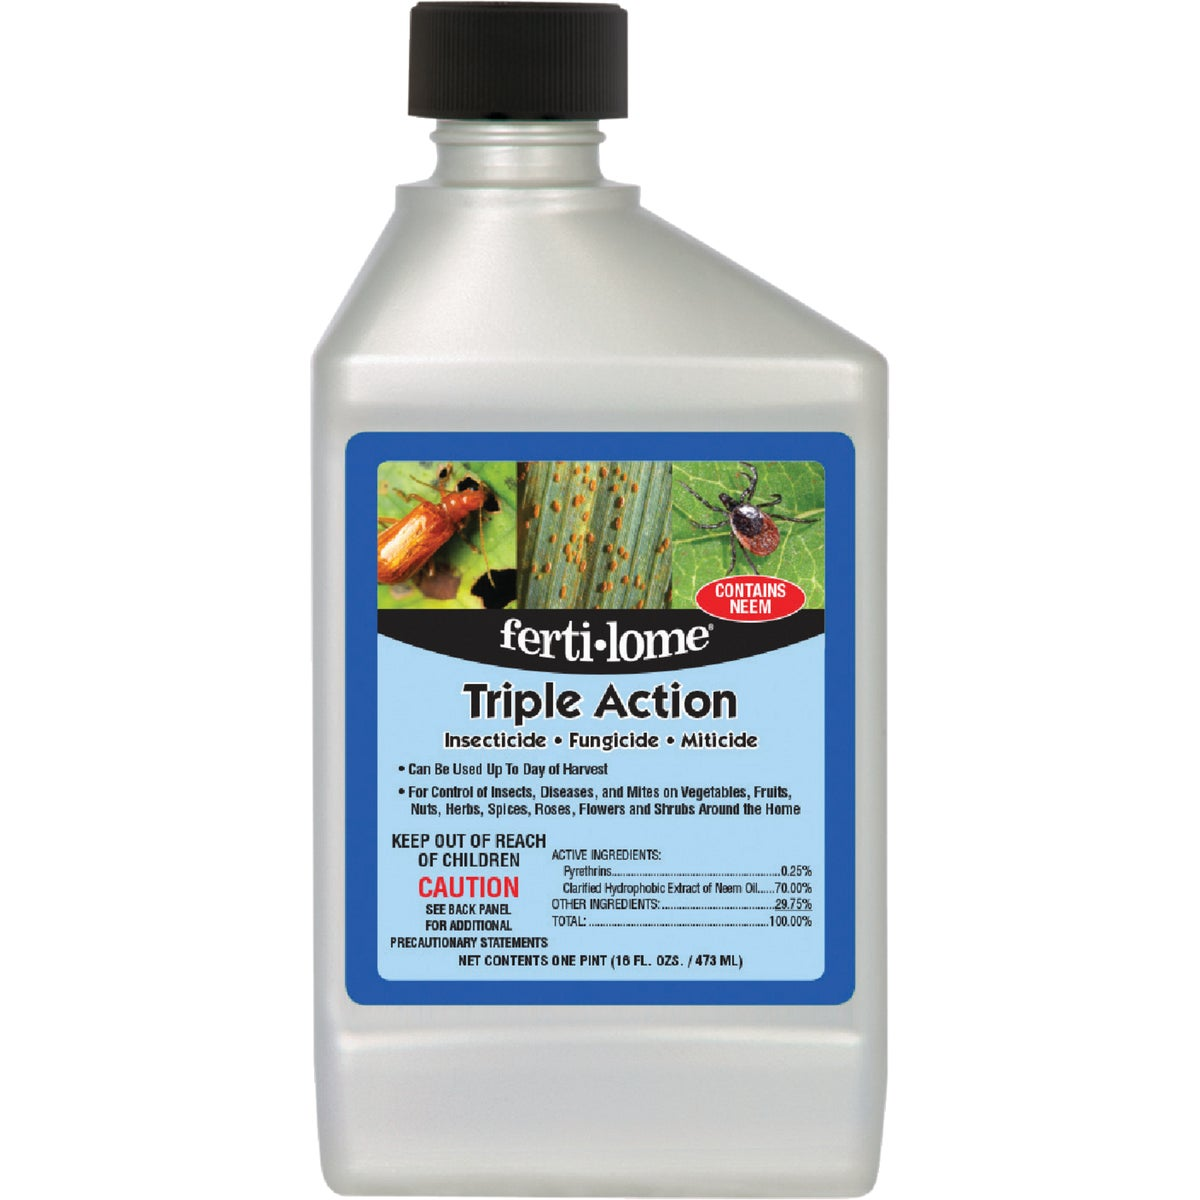 16OZ TRIP ACTION PLUS II - 12245 by Vpg Fertilome